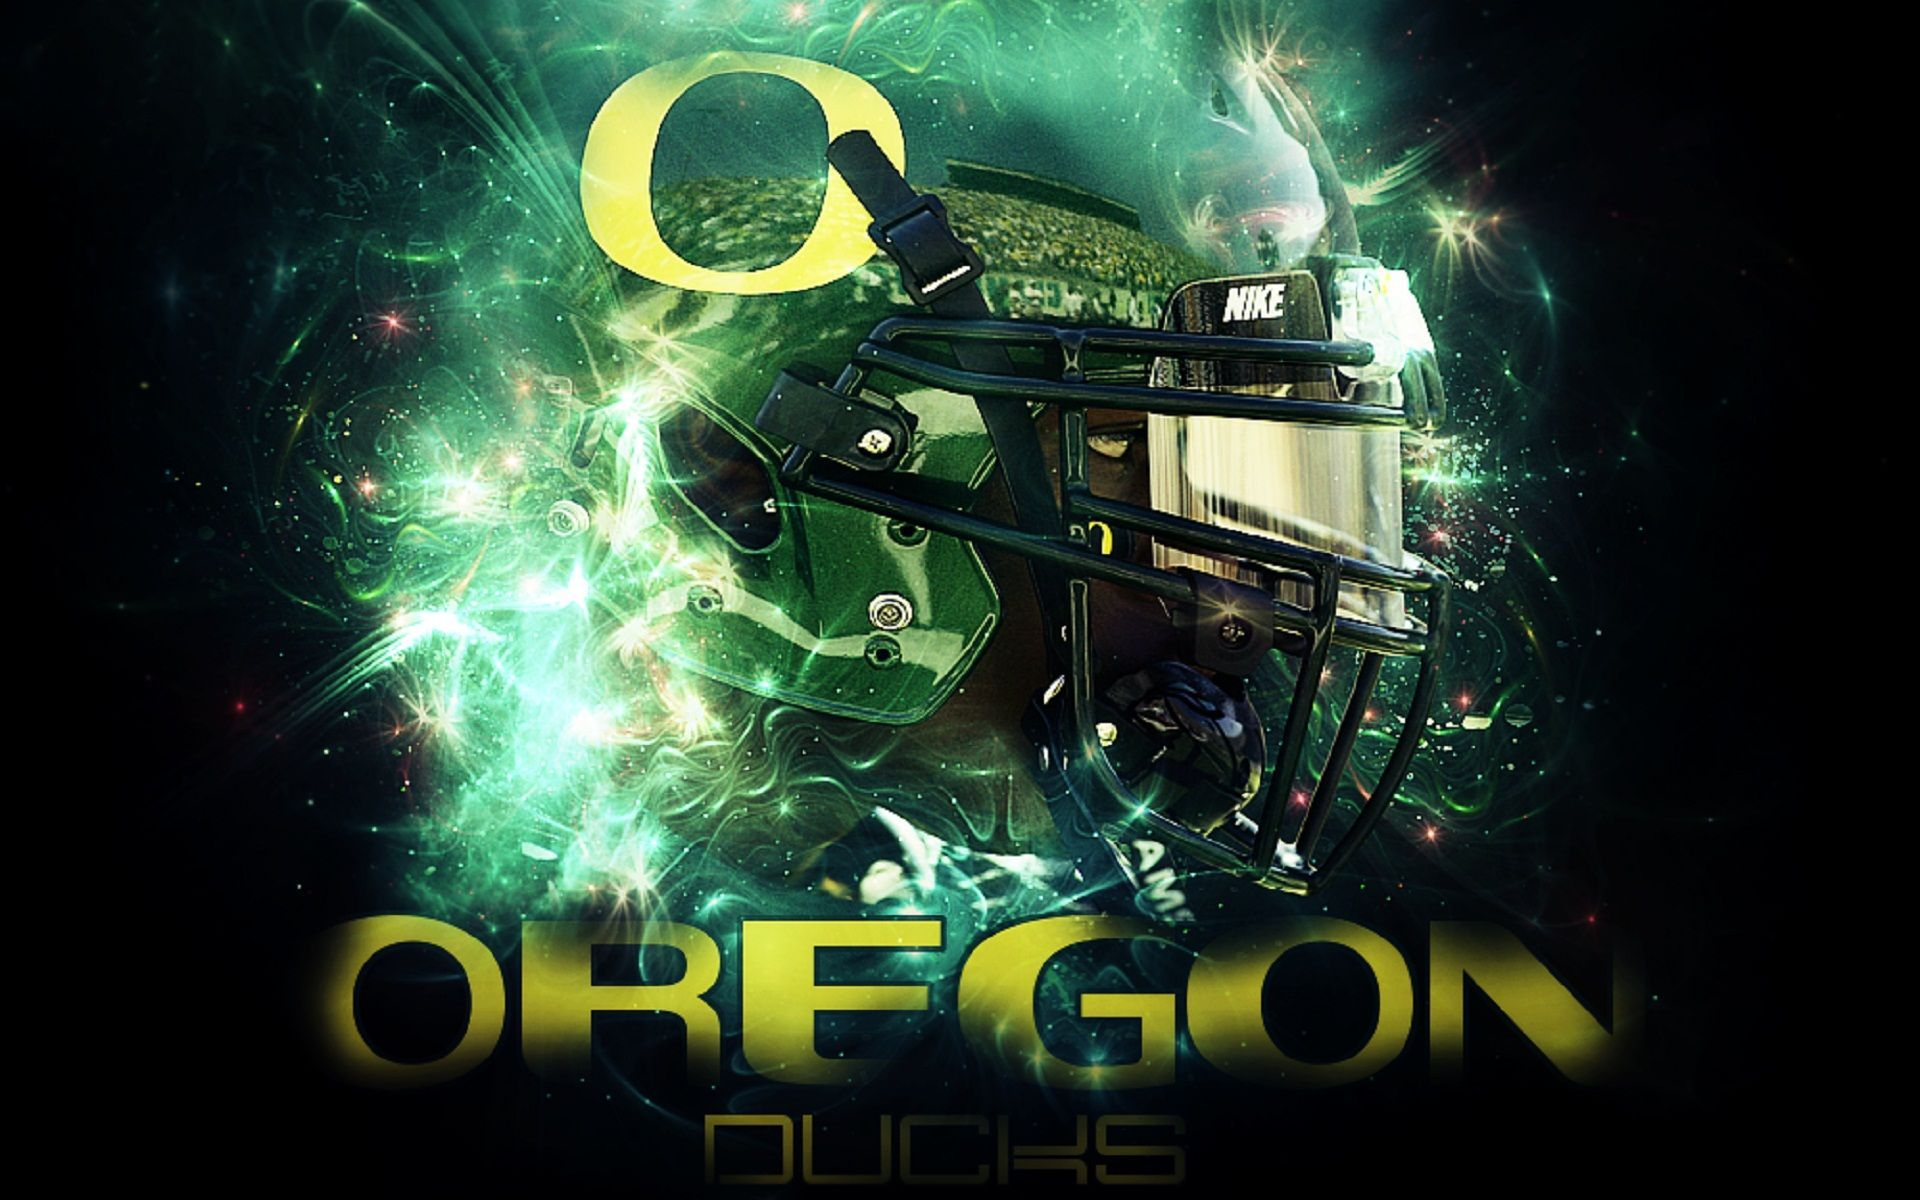 Oregon Wallpaper Ducks